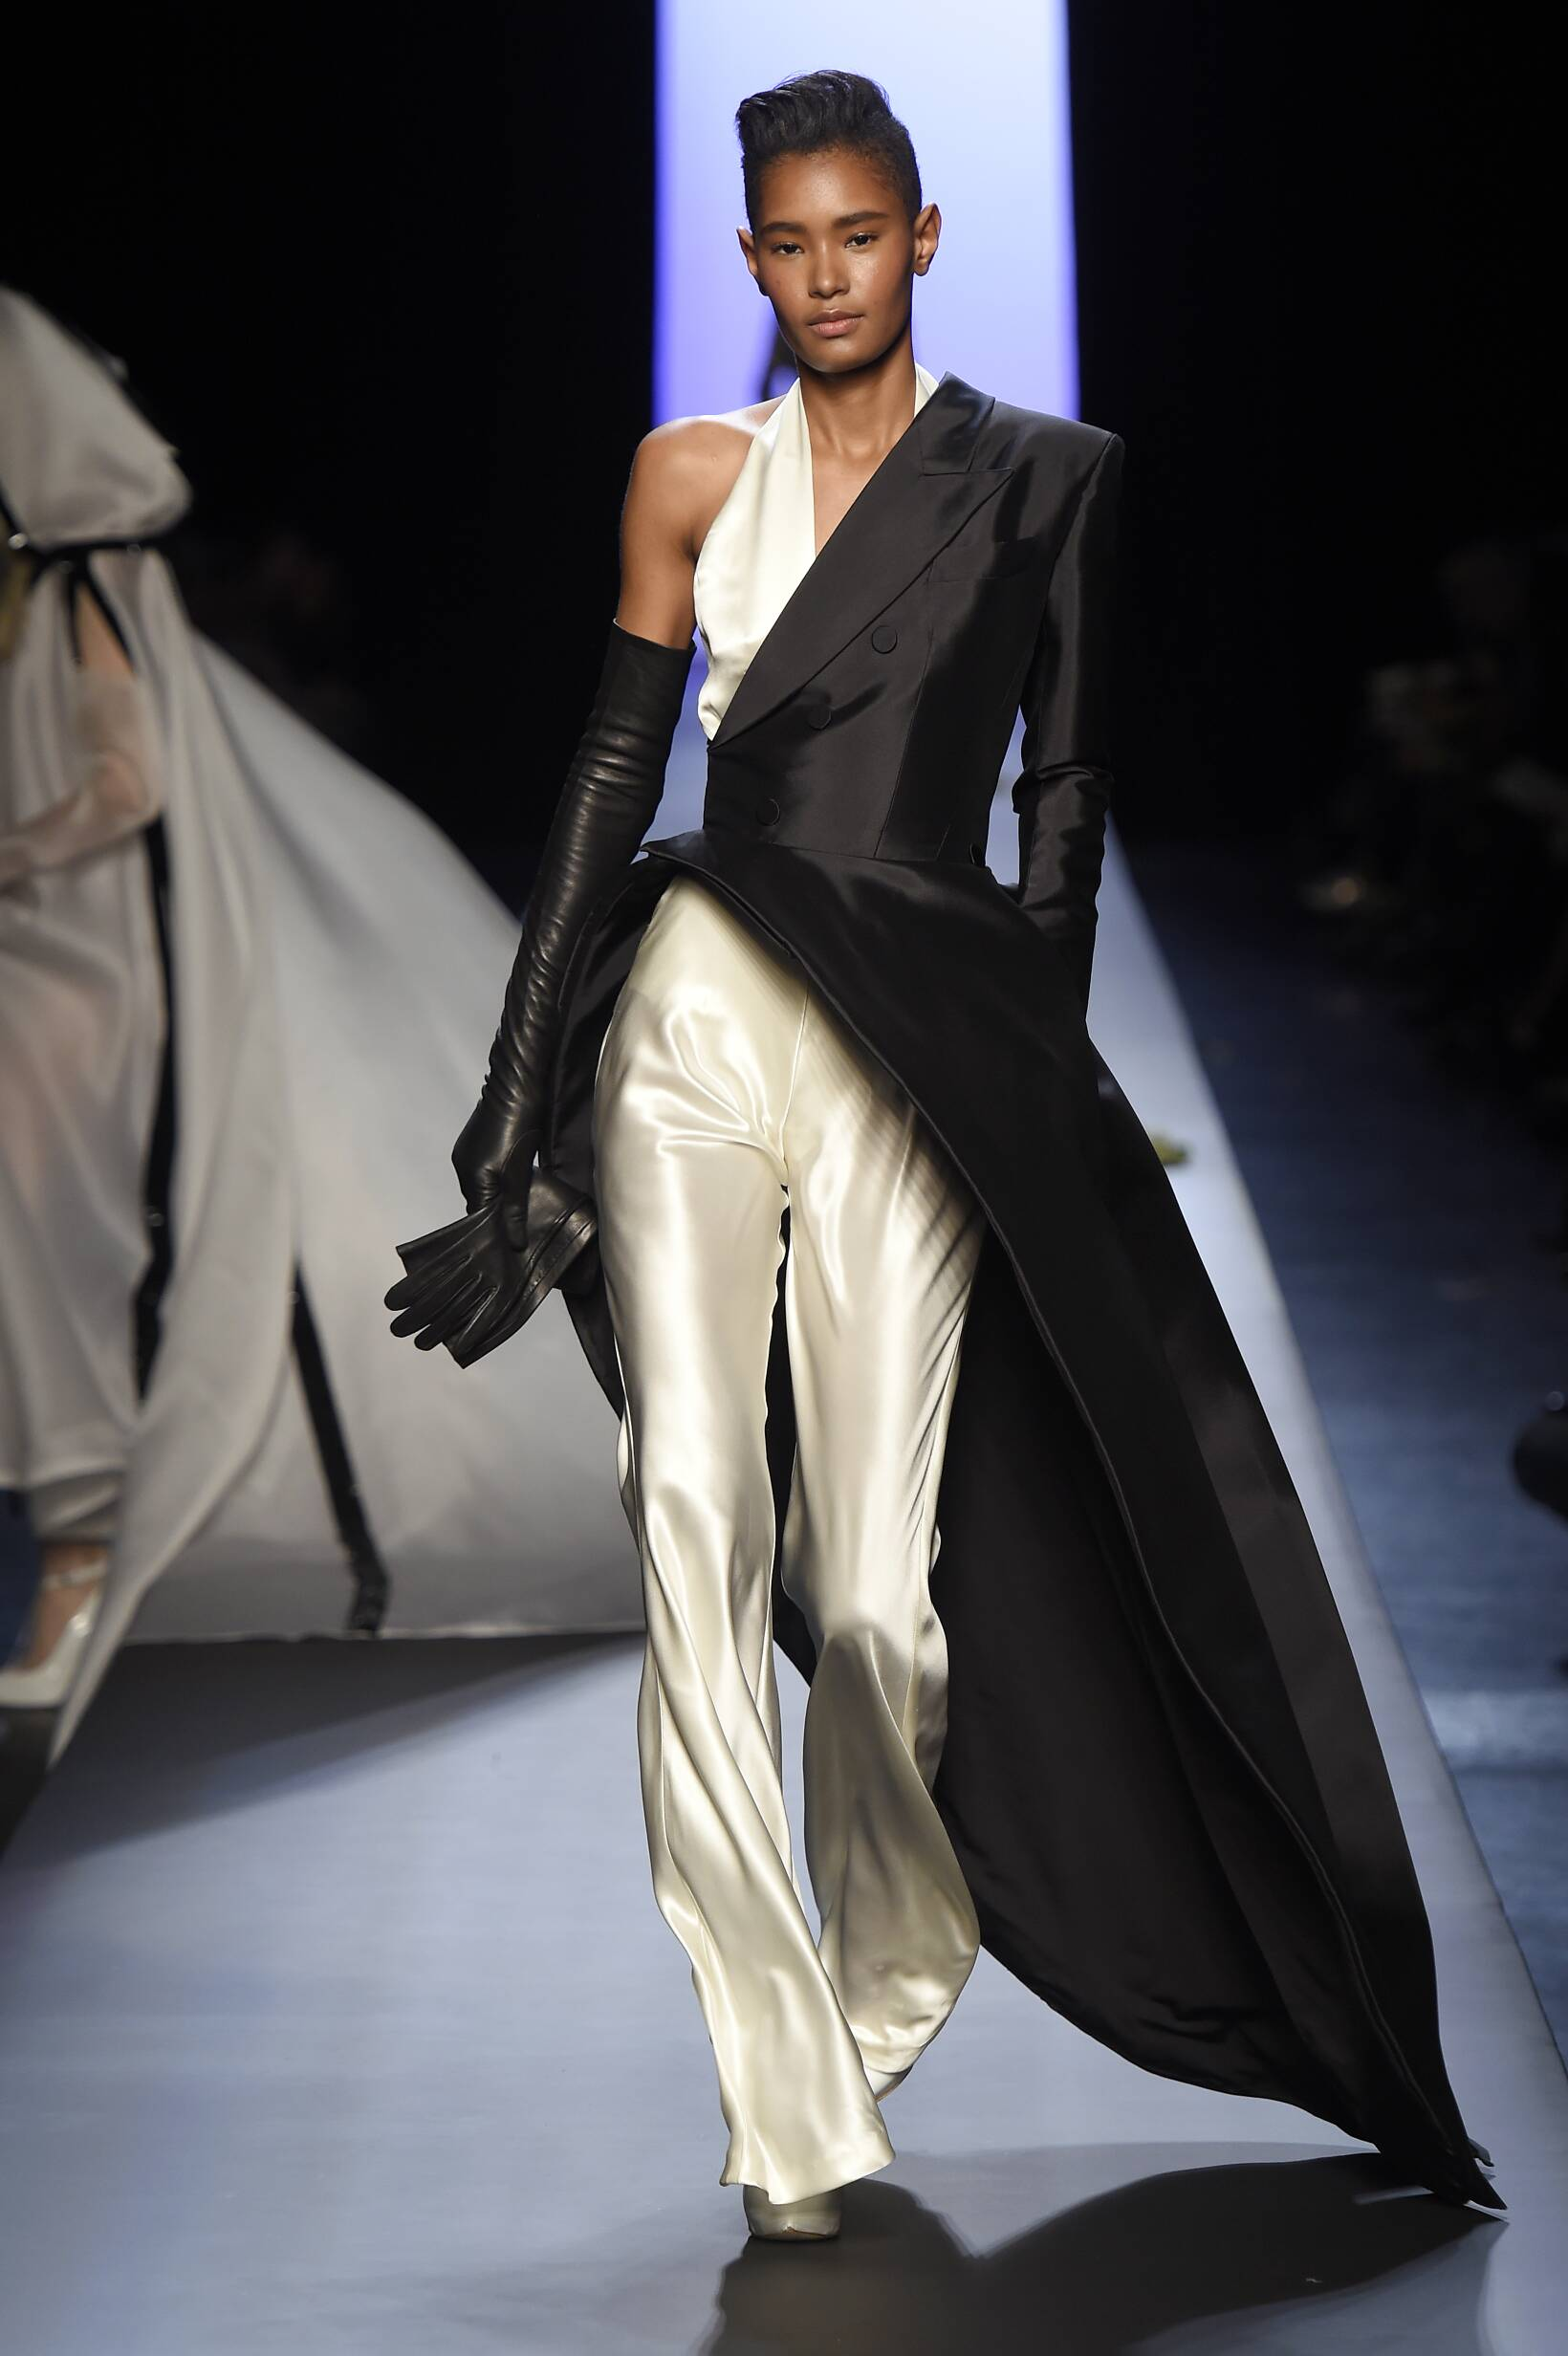 Jean Paul Gaultier Haute Couture Spring Summer 2015 Women's Collection Paris Fashion Week